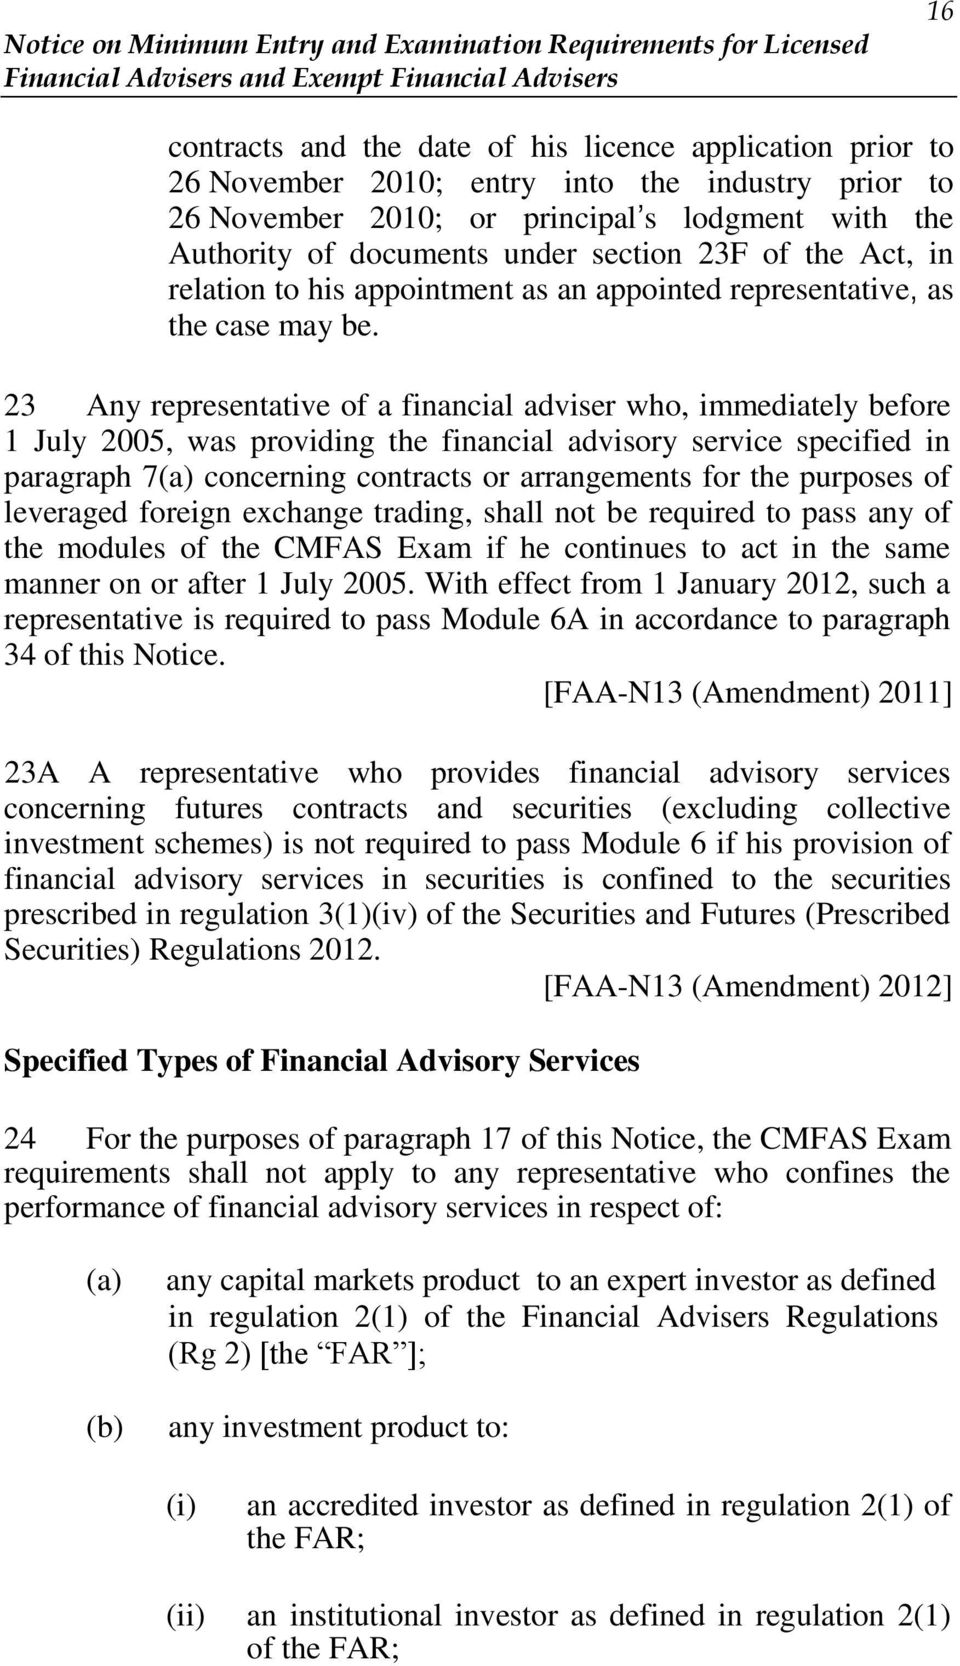 23 Any representative of a financial adviser who, immediately before 1 July 2005, was providing the financial advisory service specified in paragraph 7(a) concerning contracts or arrangements for the